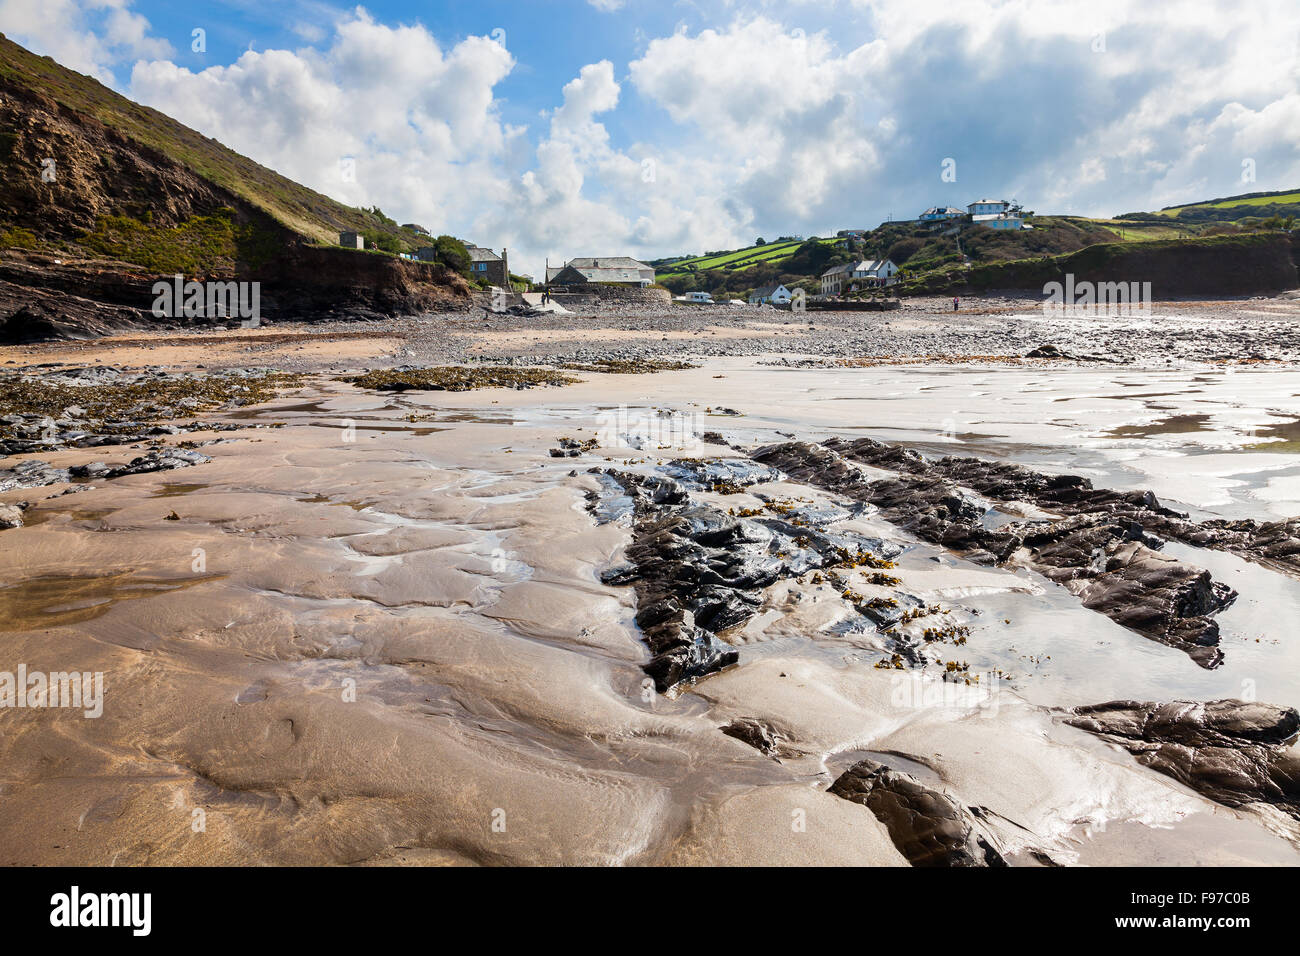 The beach at Crackington Haven on the North Cornwall coast England UK Europe - Stock Image